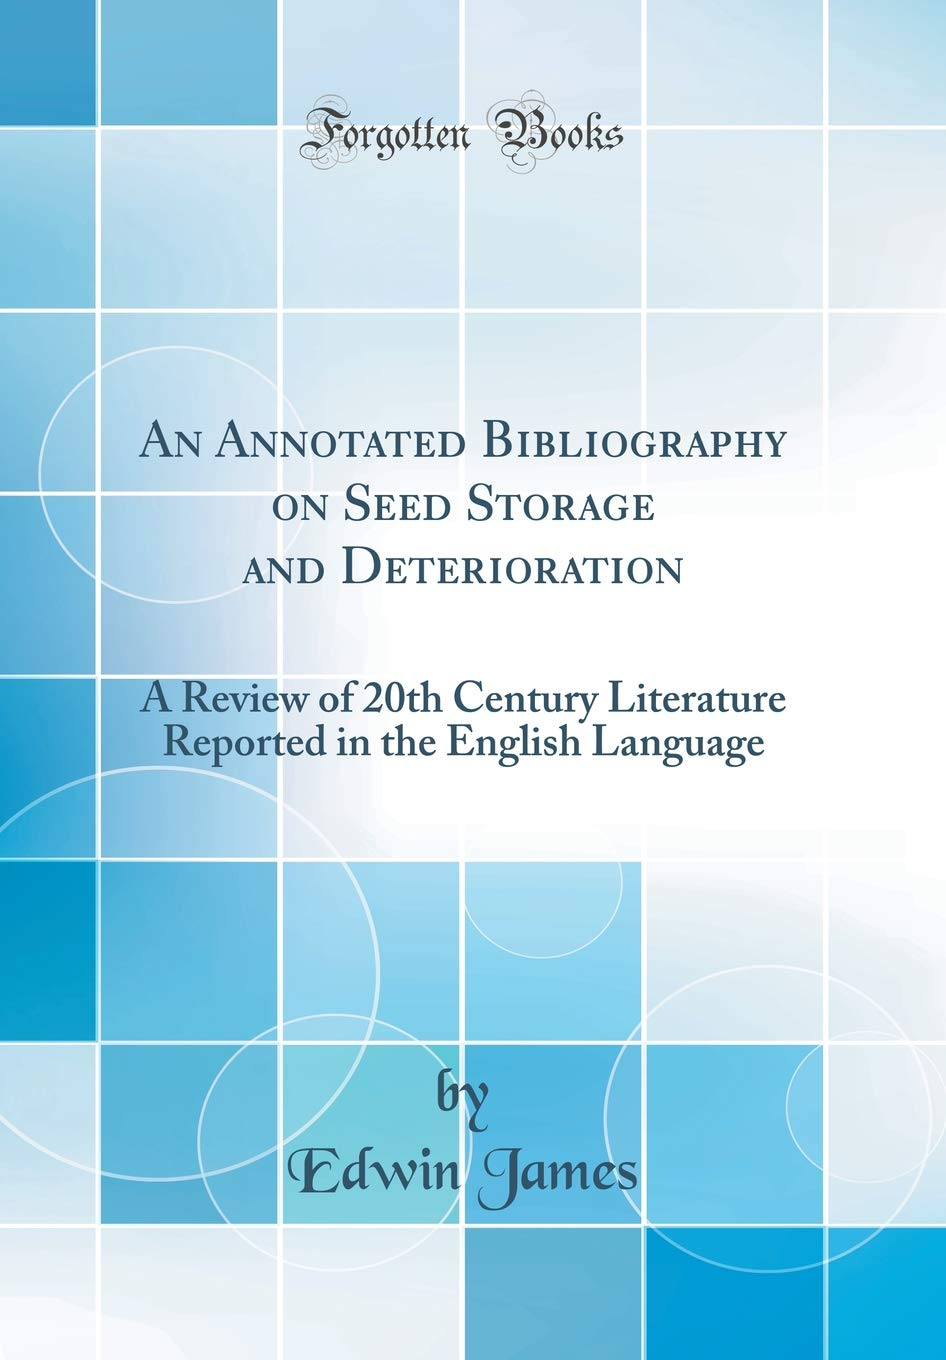 An Annotated Bibliography on Seed Storage and Deterioration: A Review of 20th Century Literature Reported in the English Language (Classic Reprint) by Forgotten Books